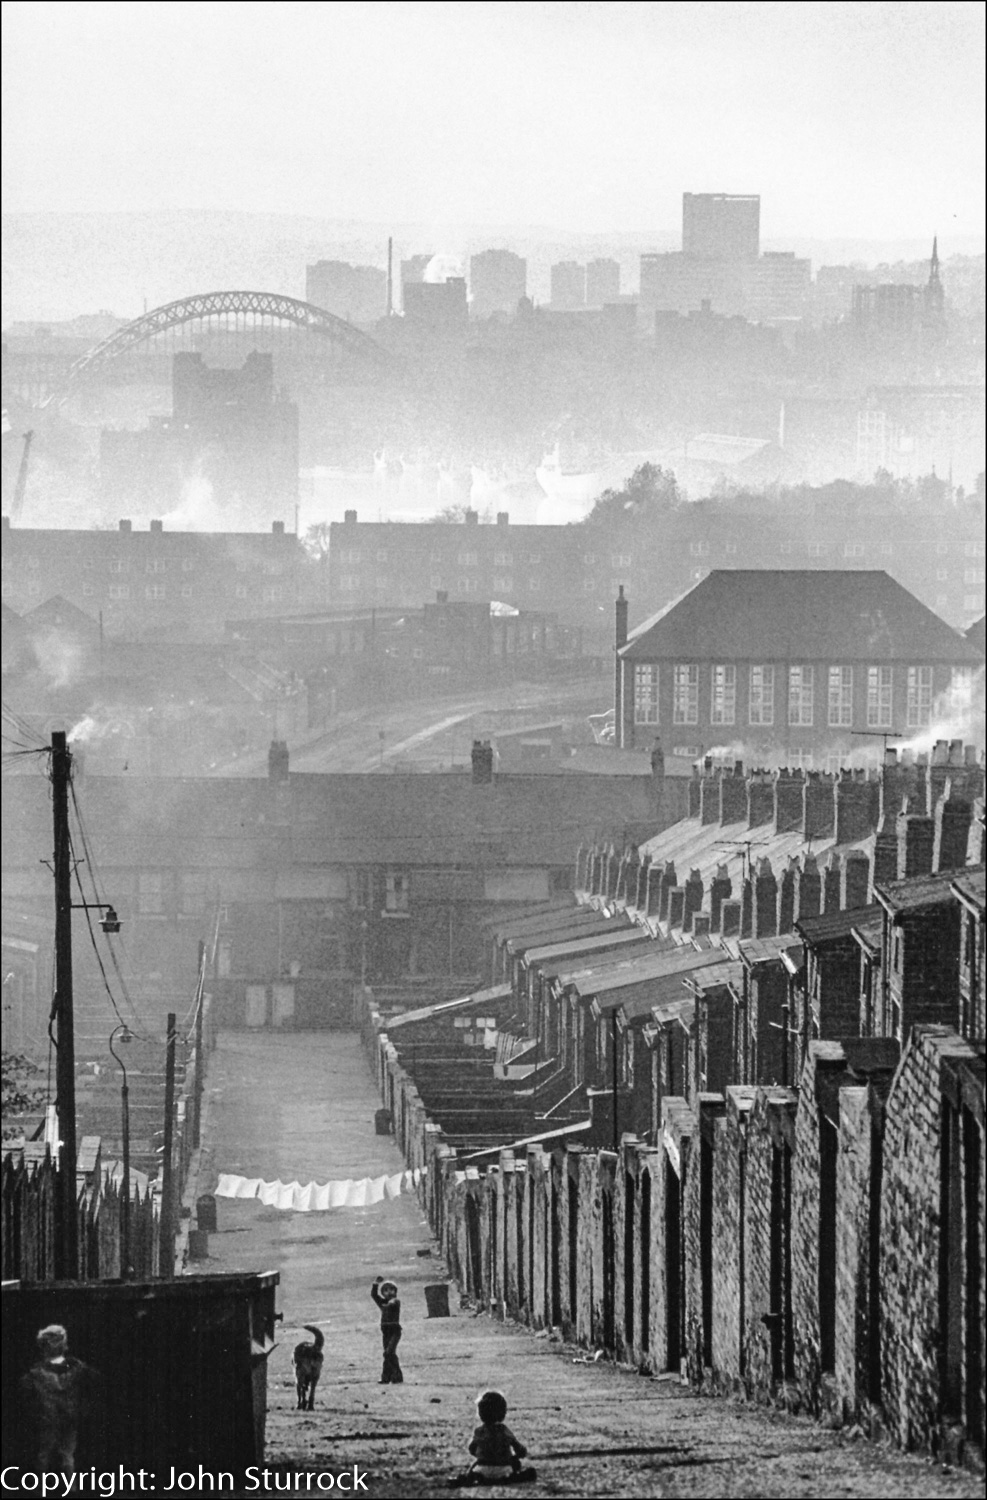 Byker, Newcastle upon Tyne, 1976.jpg